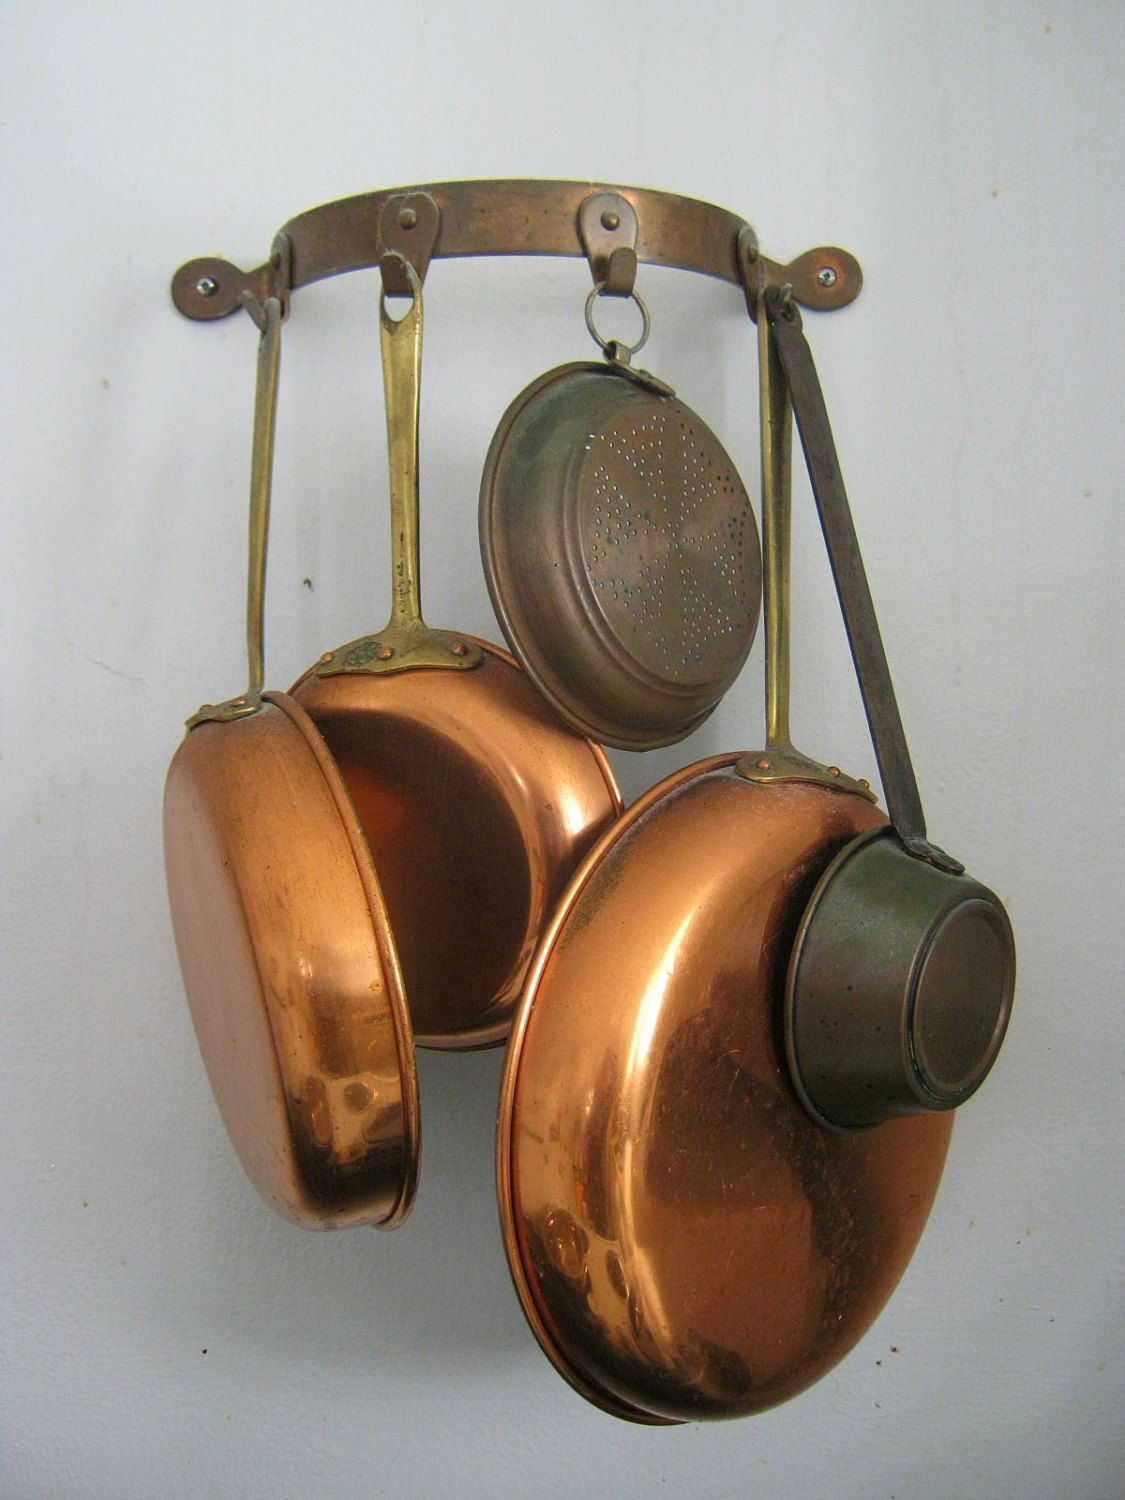 Vintage Copper Pot Rack This Is A Half Moon Style Designed To Hang From A Wall It Has Four Hooks For Hang Copper Pots Kitchen Copper Pots Display Copper Pots